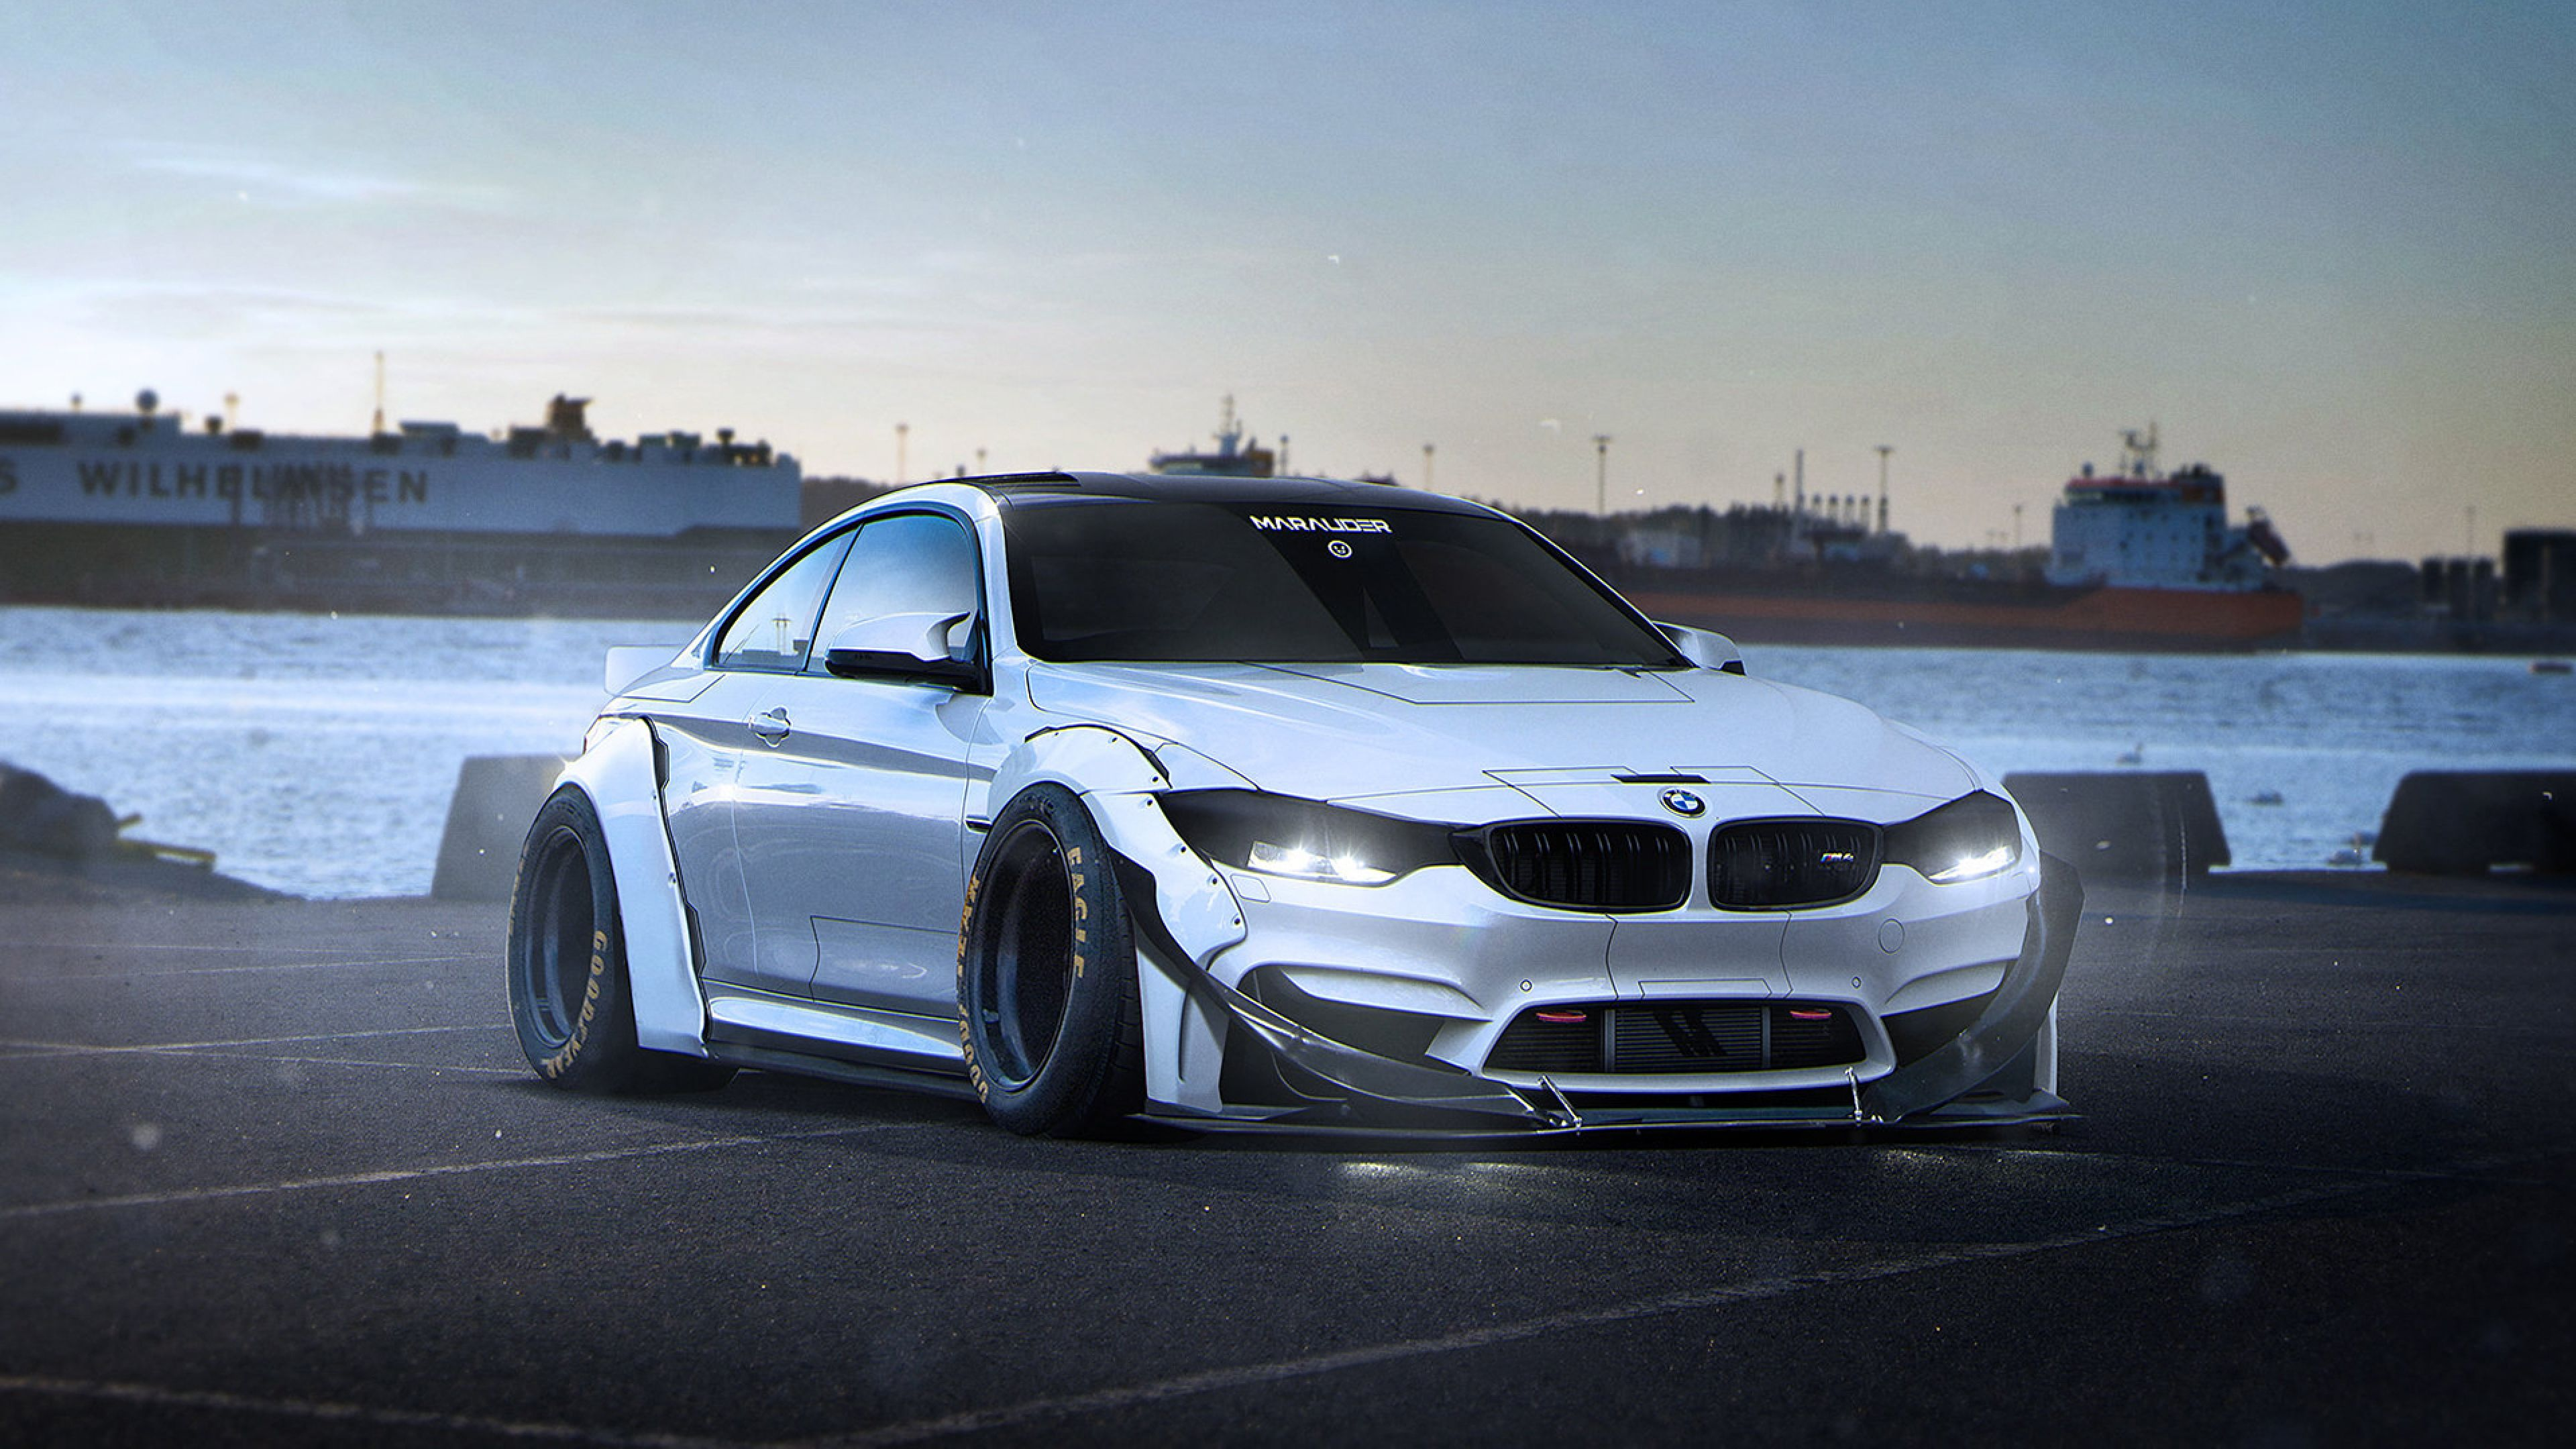 K Ultra HD M Wallpapers HD Desktop Backgrounds x | HD Wallpapers | Bmw m4, Bmw cars и BMW